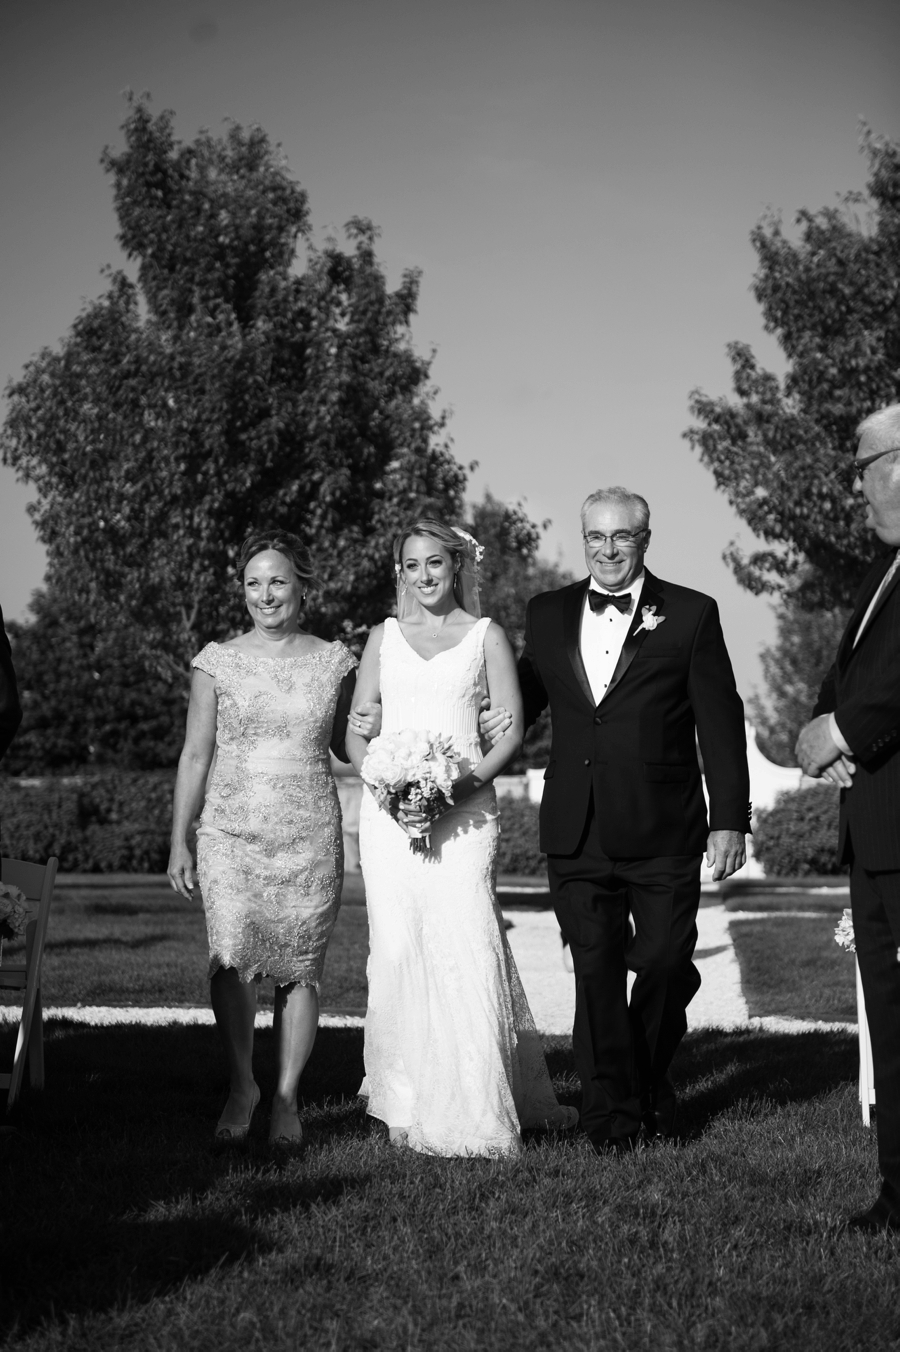 Belle_Mer_Wedding_Newport_34.jpg